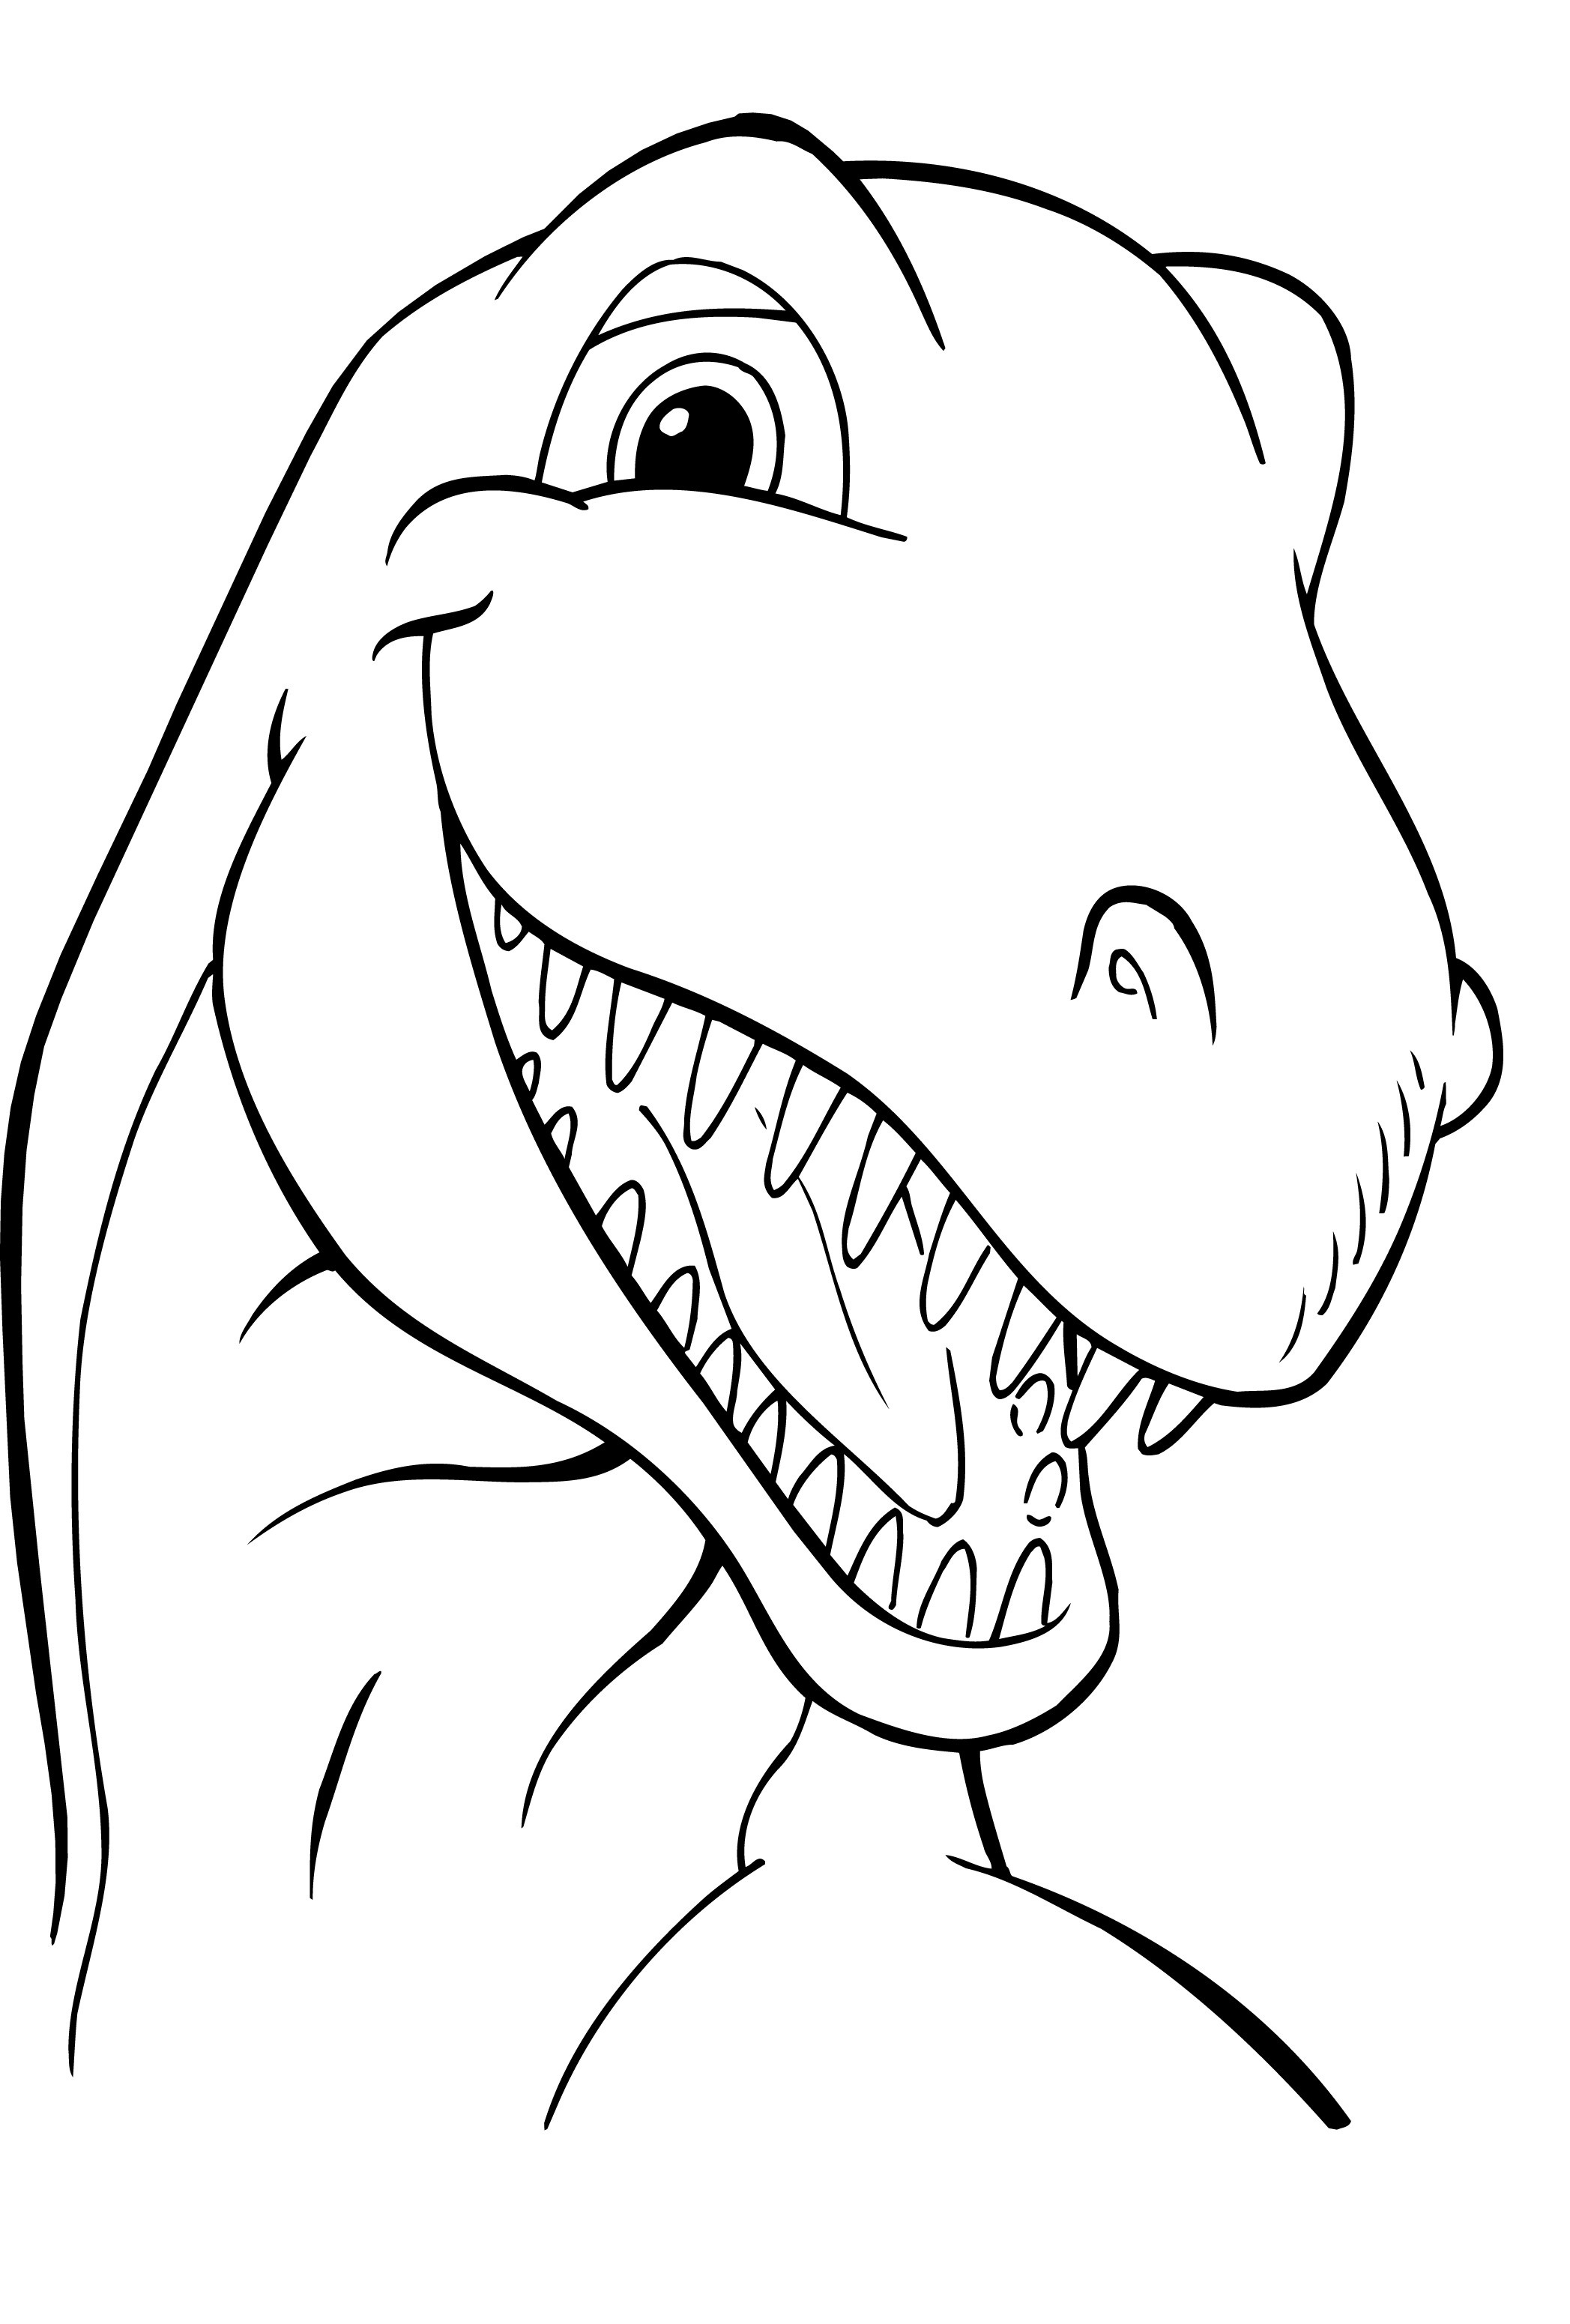 Free Printable Dinosaur Coloring Pages For Kids Coloring Pages Print